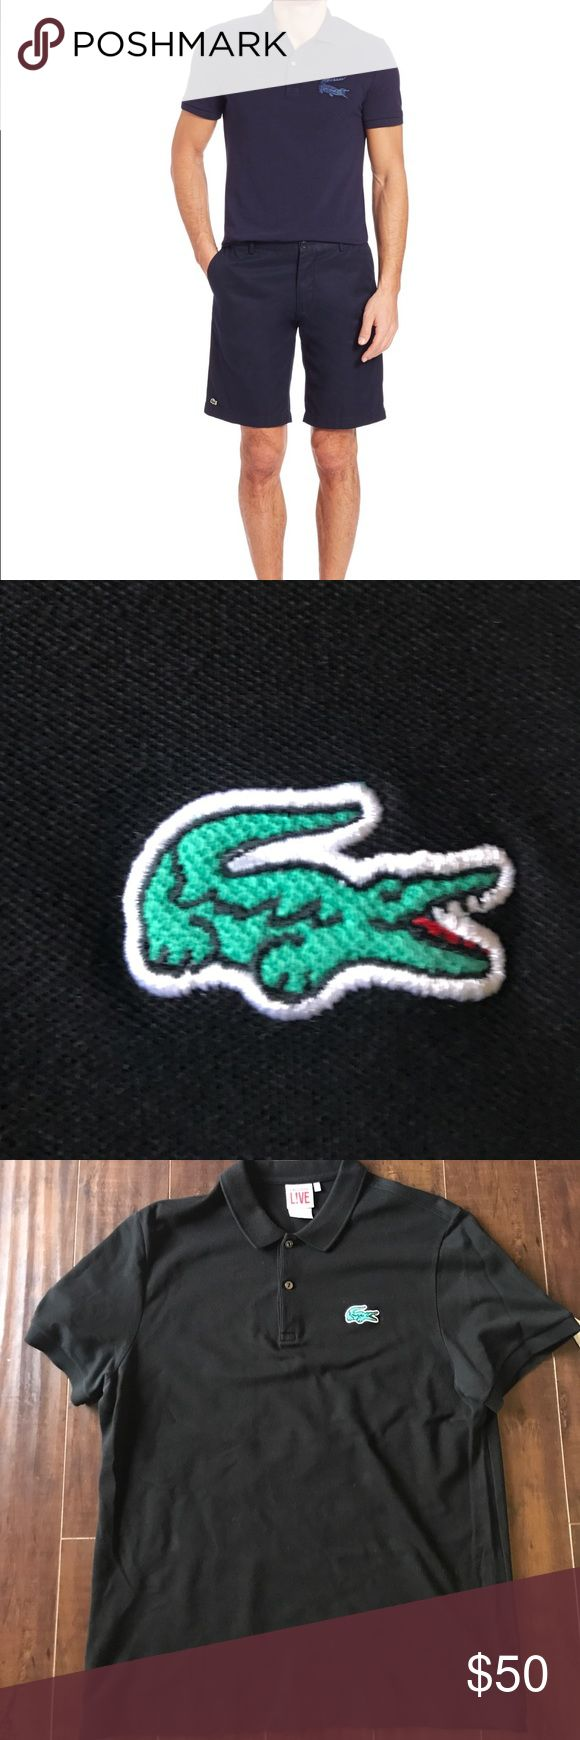 BLACK Lacoste L!VE Polo sz 6/XL Purchased at South Coast mall. Smoke free home. 💯 authentic. Emblem is slightly different than model pic as model pic is for the pique line made exclusively for Saks. Lacoste Shirts Polos